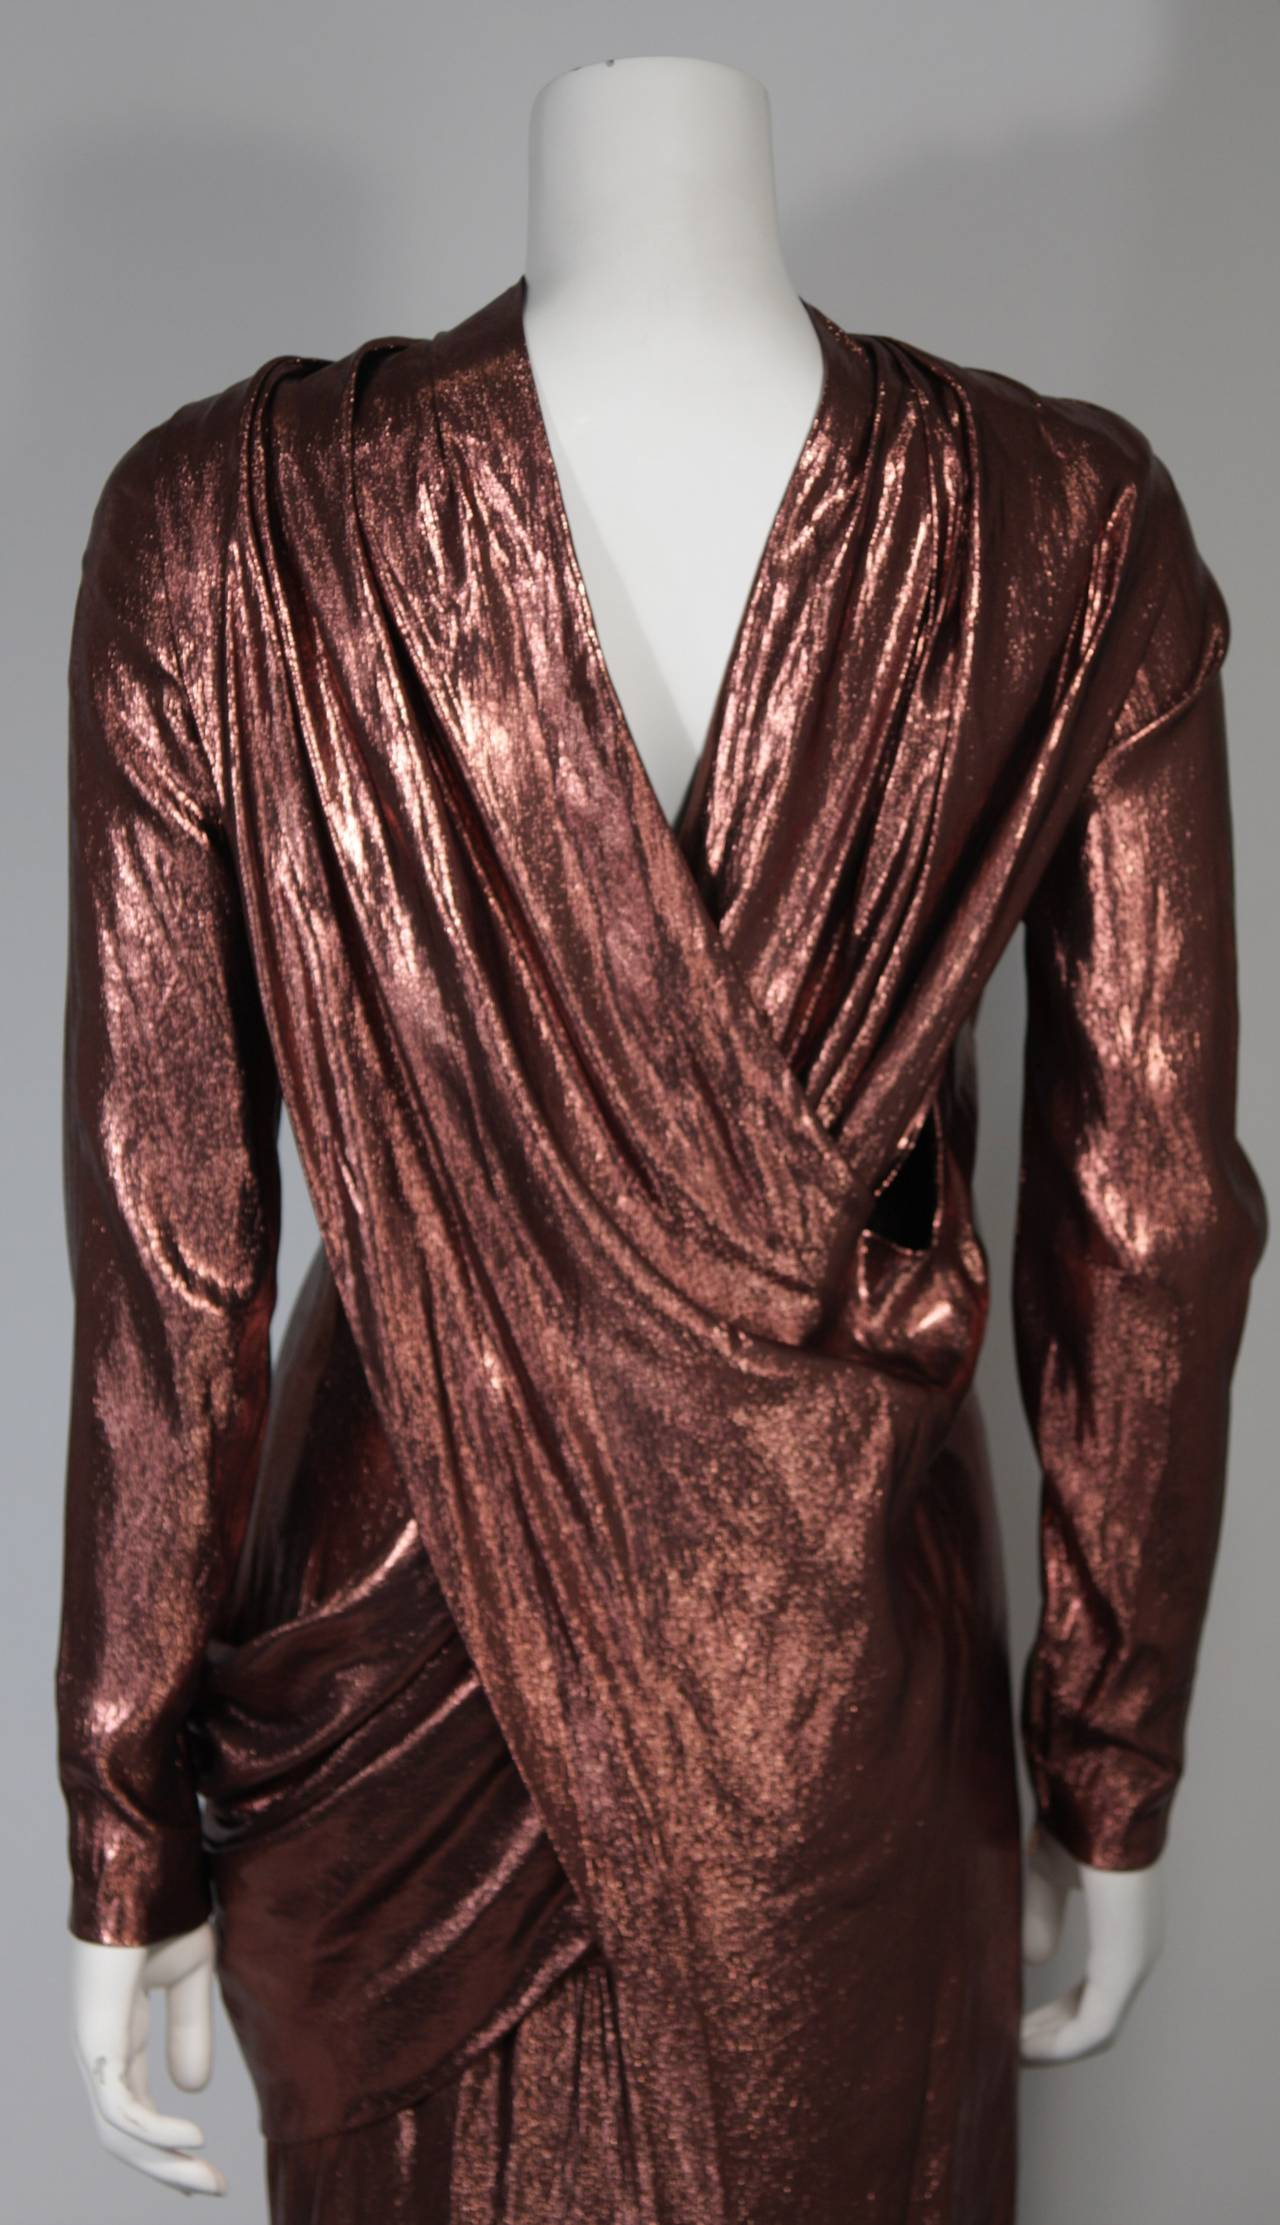 Pierre Balmain Runway Couture Copper Metallic Silk Gown Size Small Circa 1980's 7